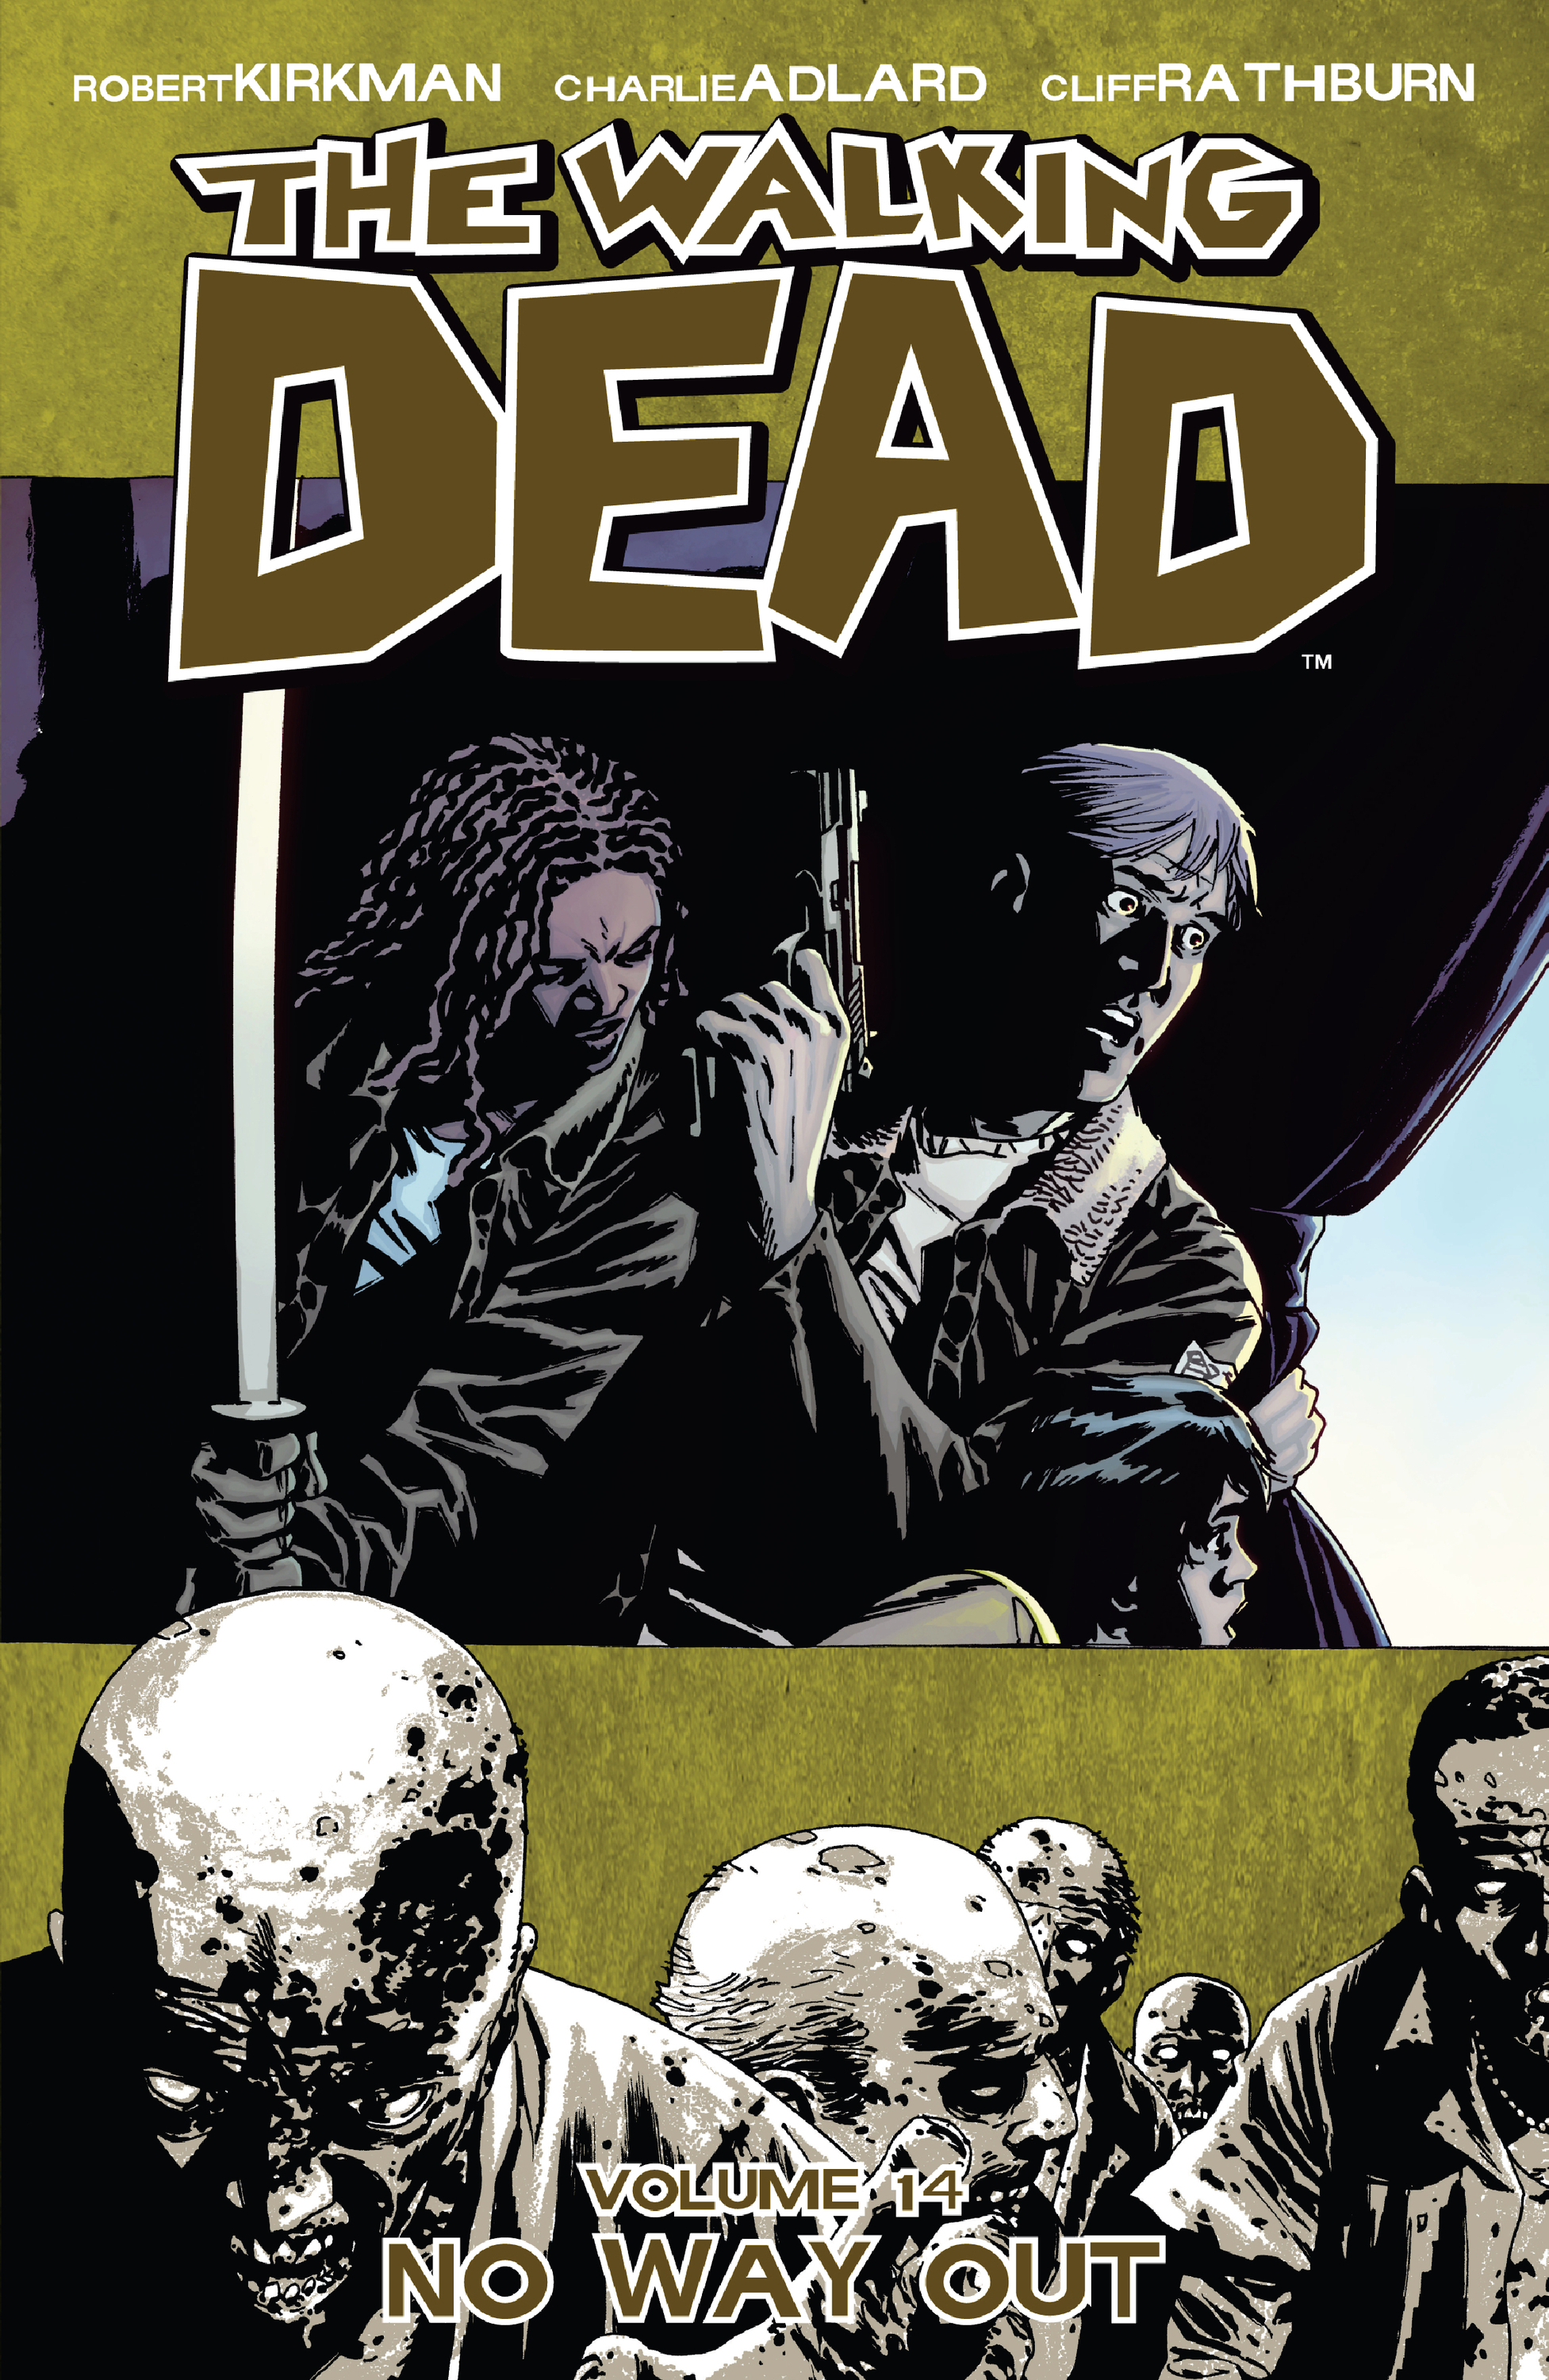 The Walking Dead, Vol. 14: No Way Out By: Robert Kirkman,Charles Adlard